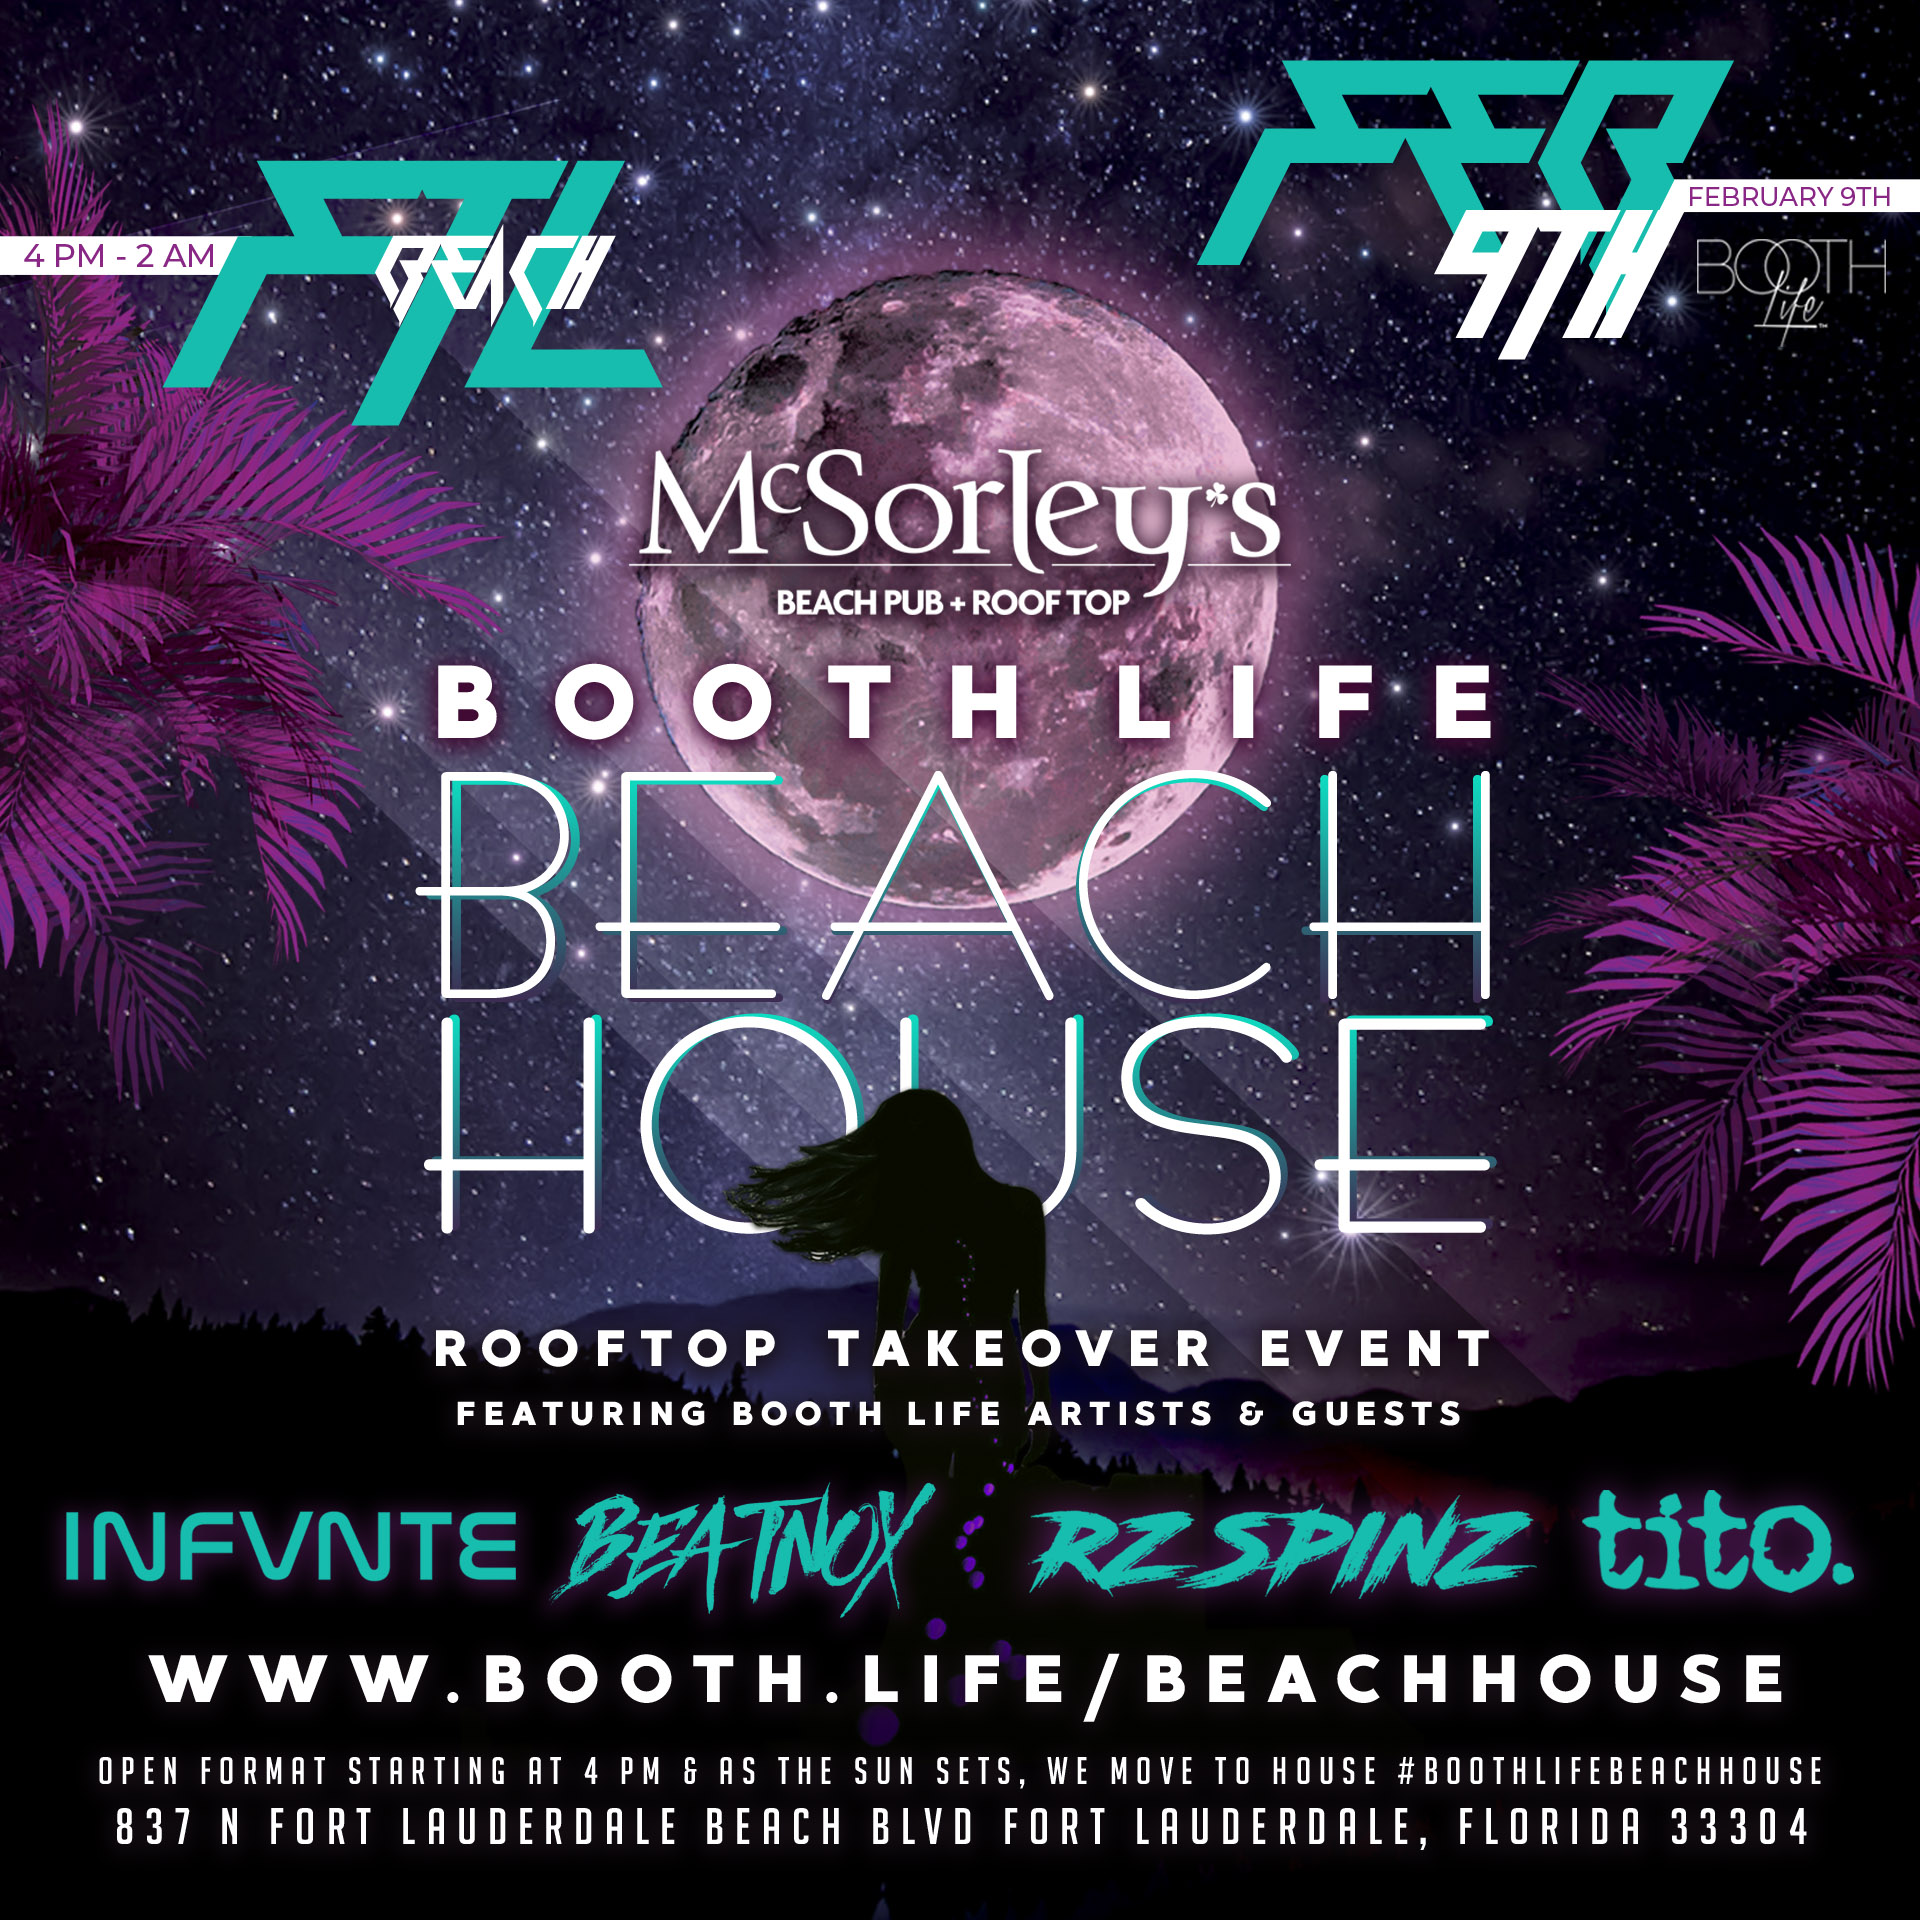 Booth Life Beach House